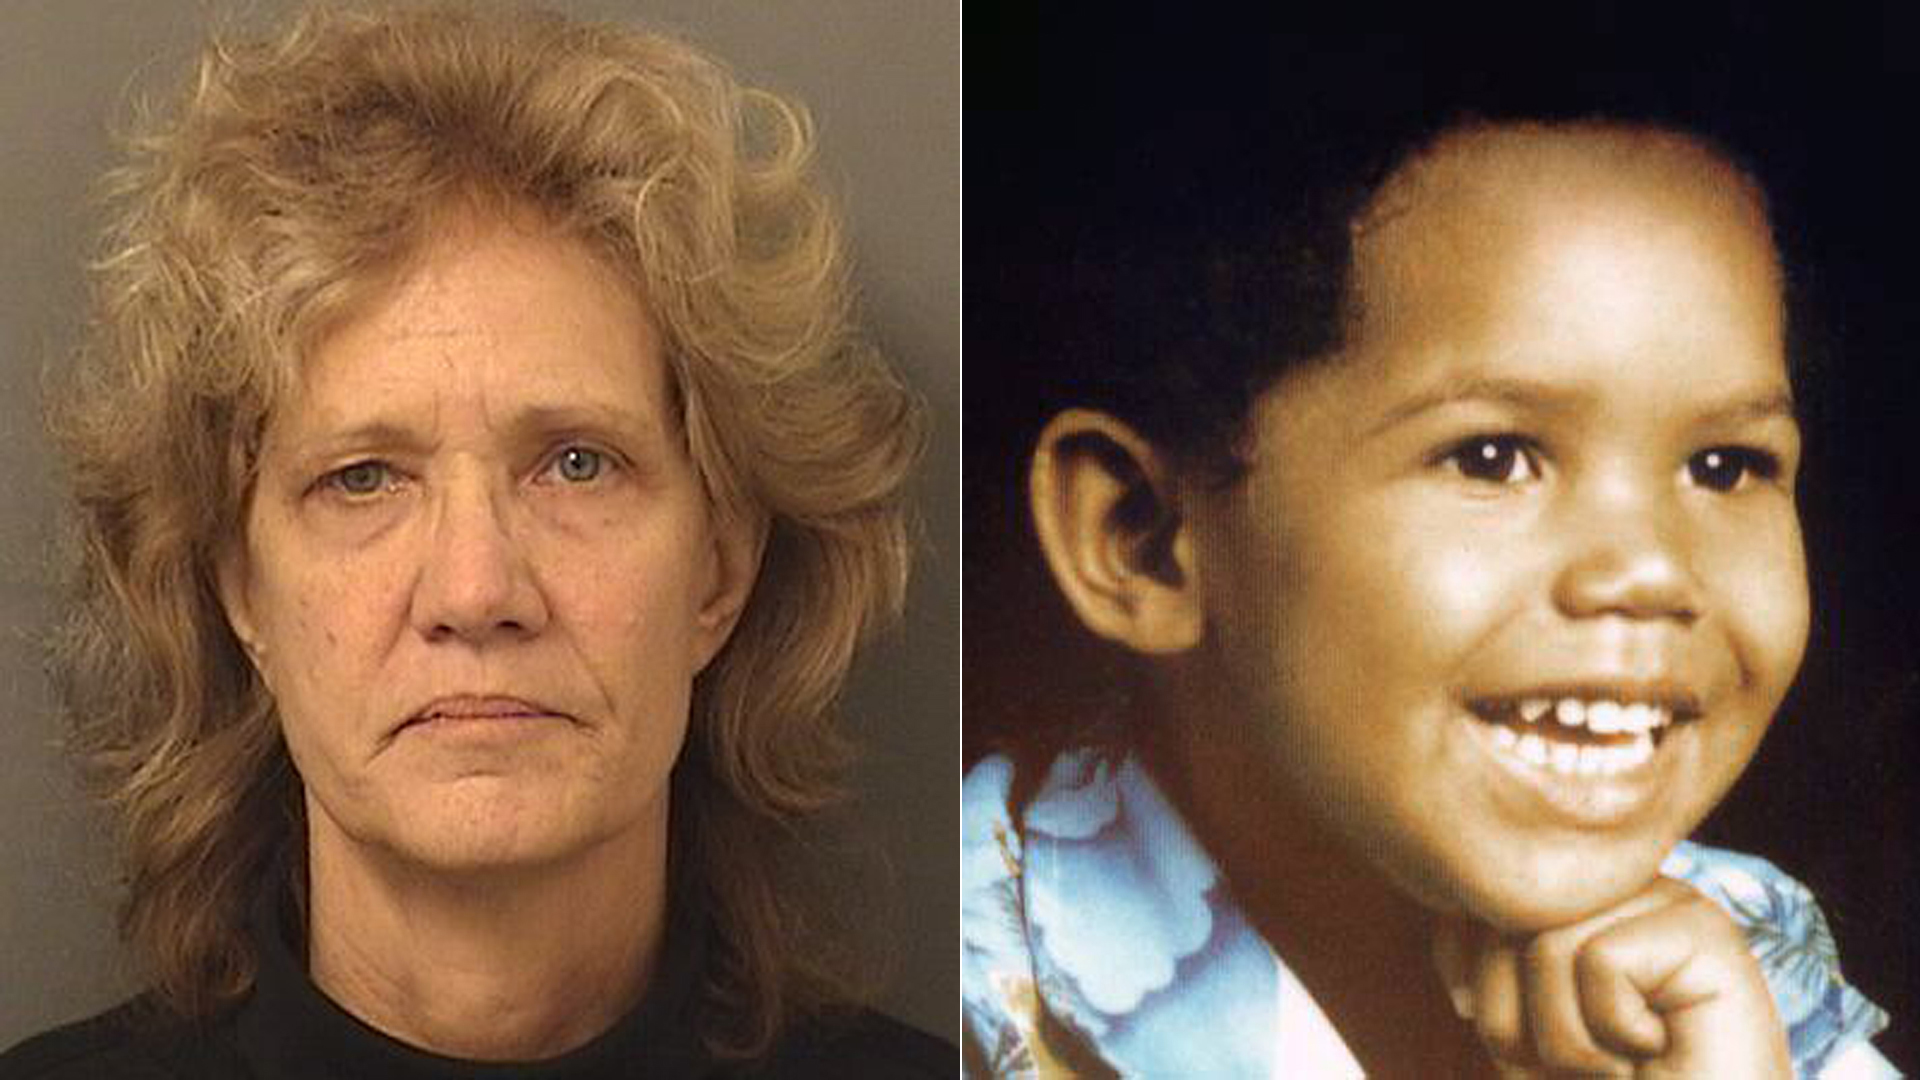 Amy Elizabeth Fleming, left, is seen in a booking photo released by the Palm Beach County Sheriff's Office; Francillon Pierre, right, is seen in a photo released by the National Center for Missing & Exploited Children.